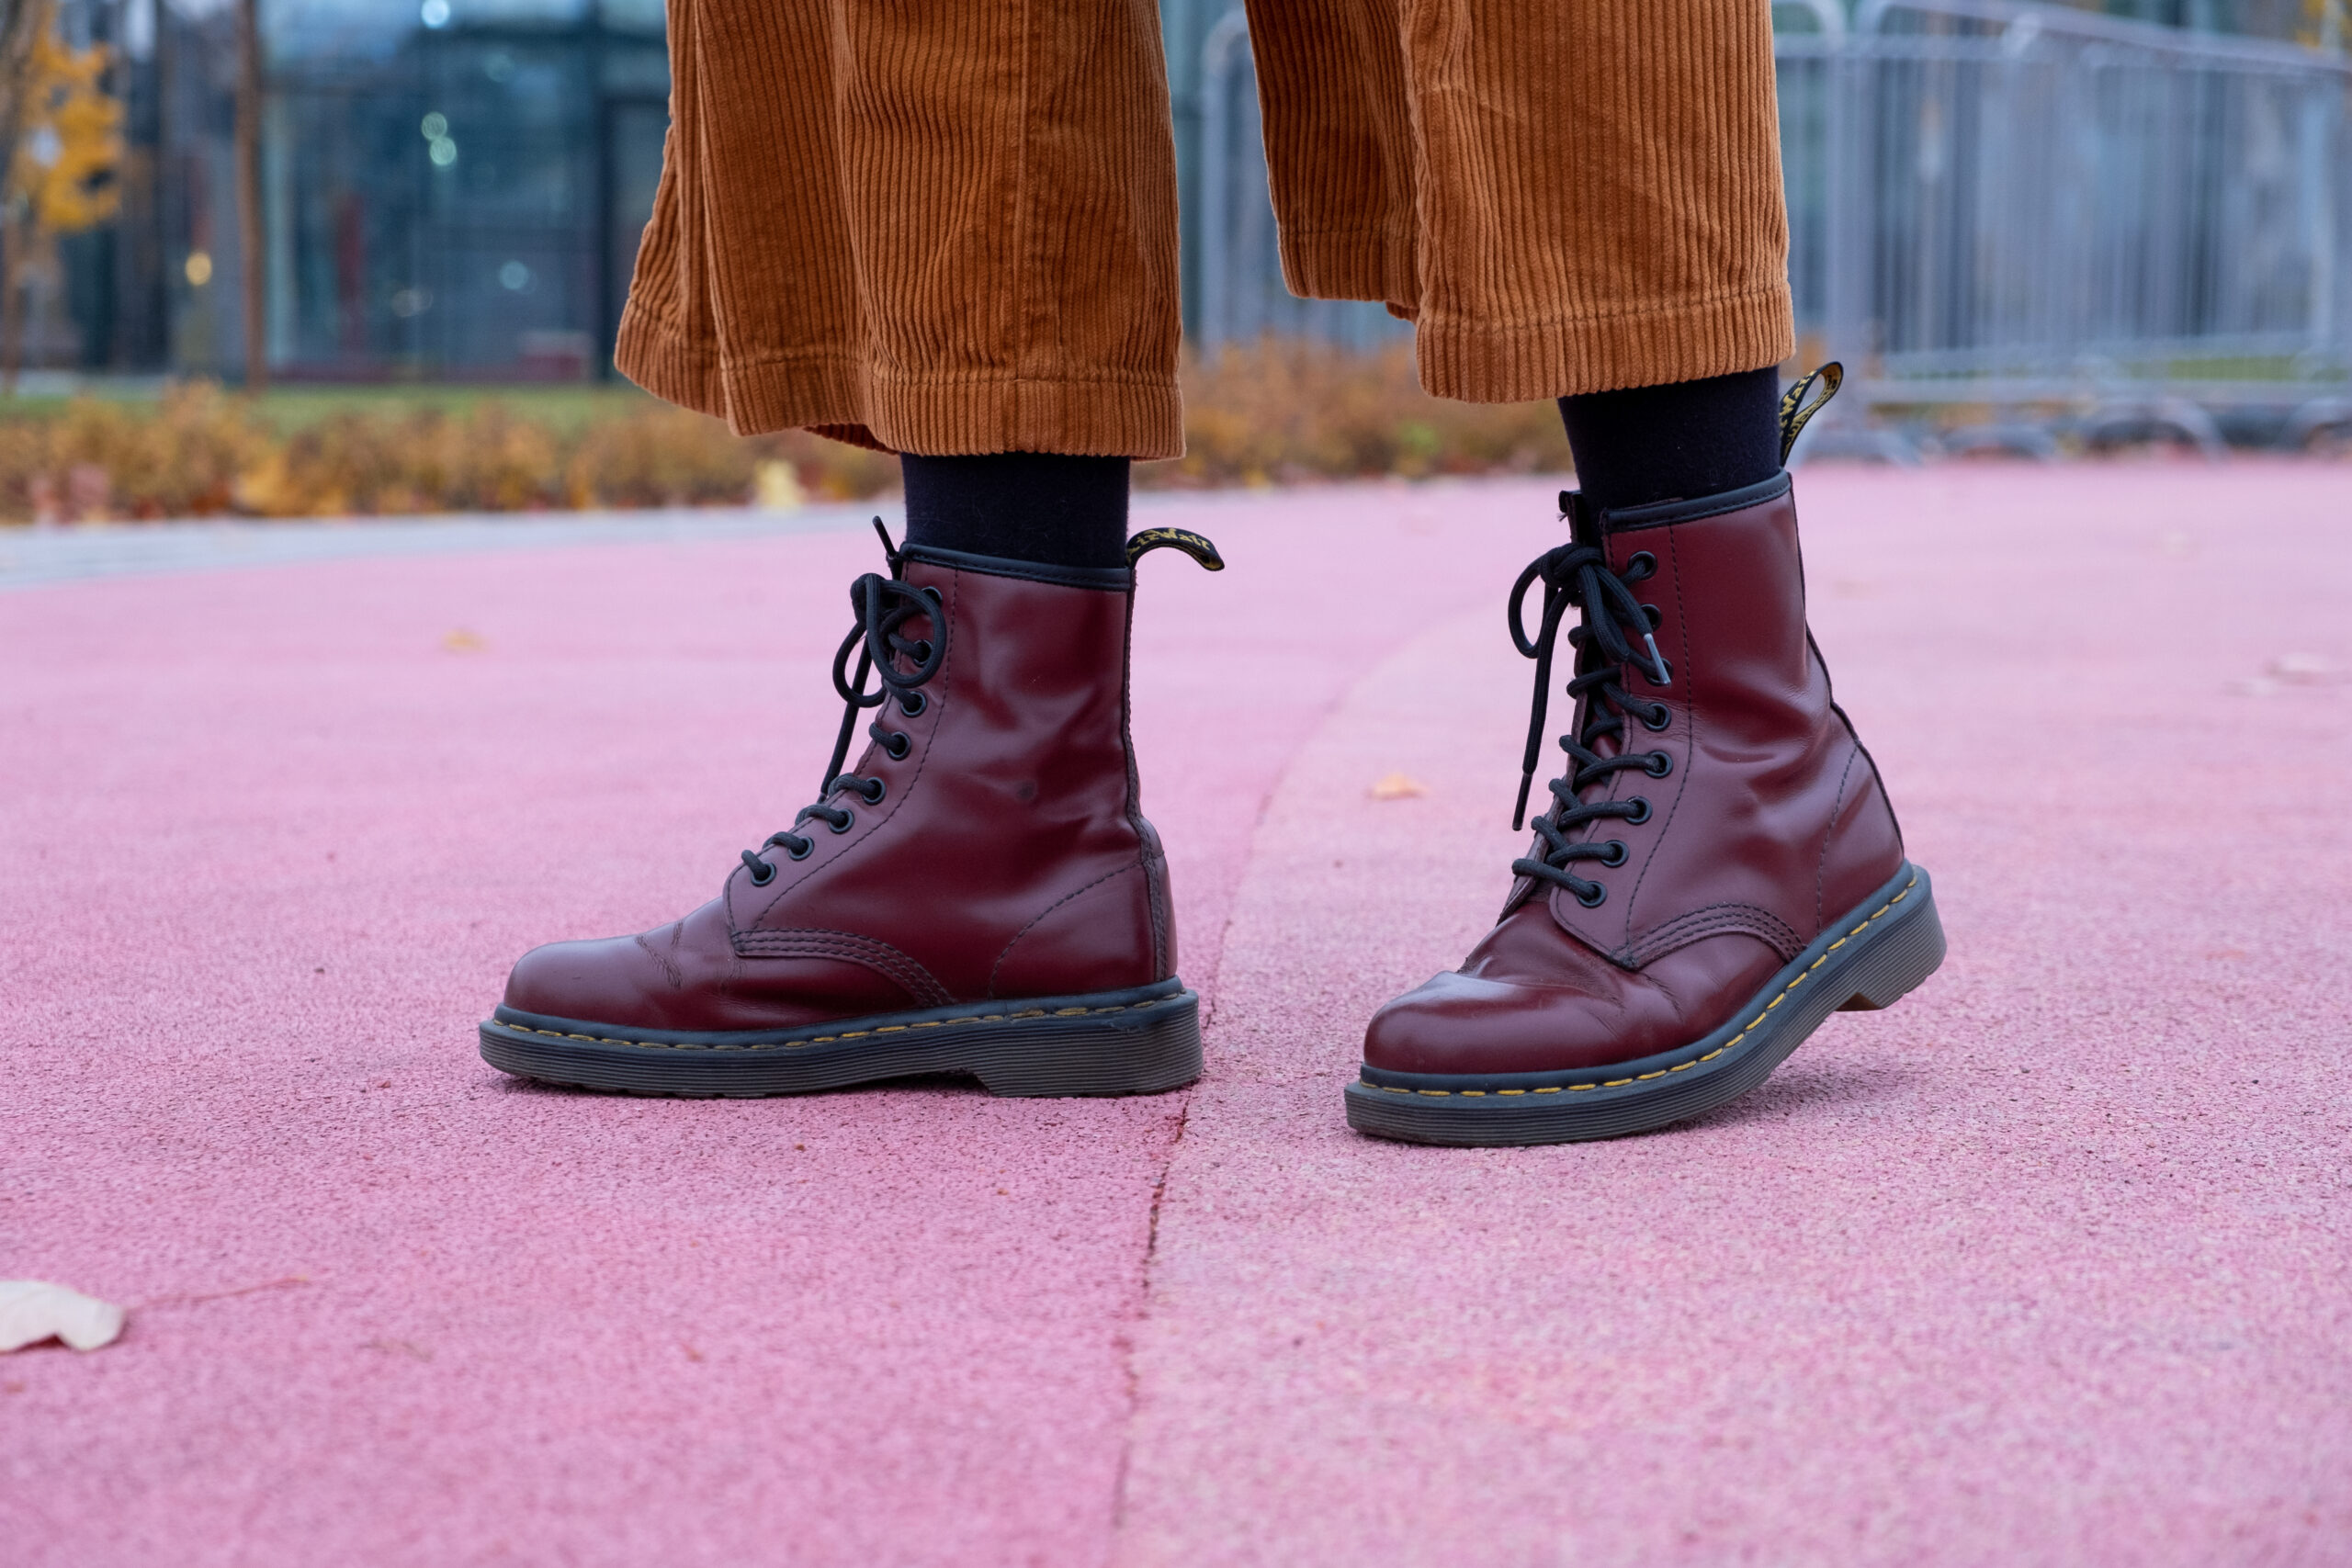 How to Wear Doc Martens – 15 Outfit Ideas for Any Style